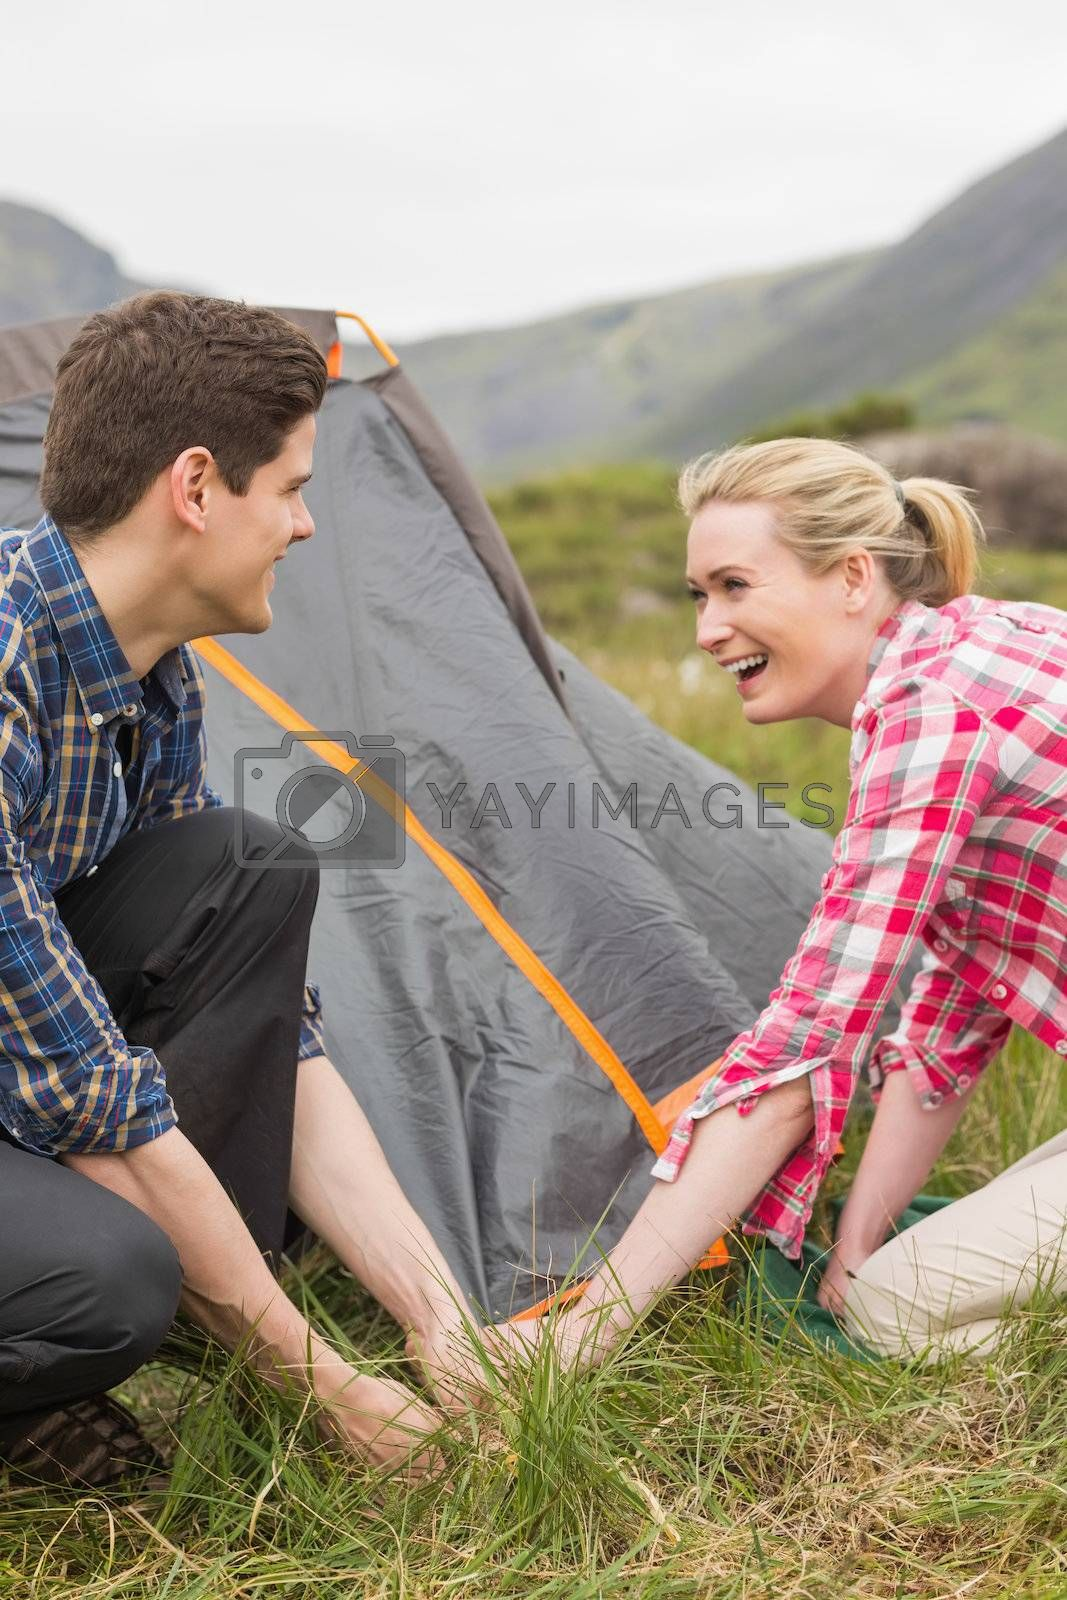 Smiling couple pitching their tent together by Wavebreakmedia